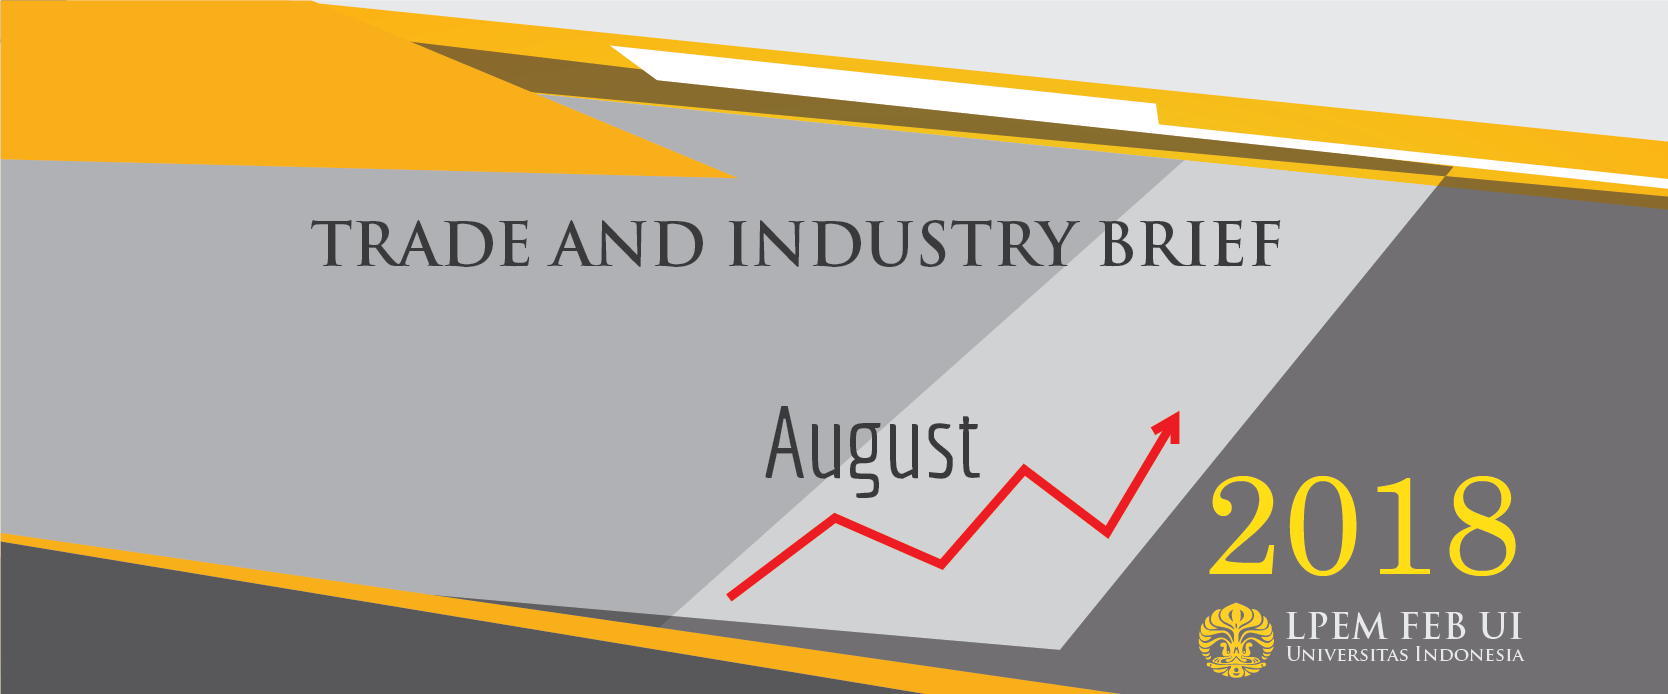 SERI ANALISIS EKONOMI: TRADE AND INDUSTRY BRIEF, Agustus 2018